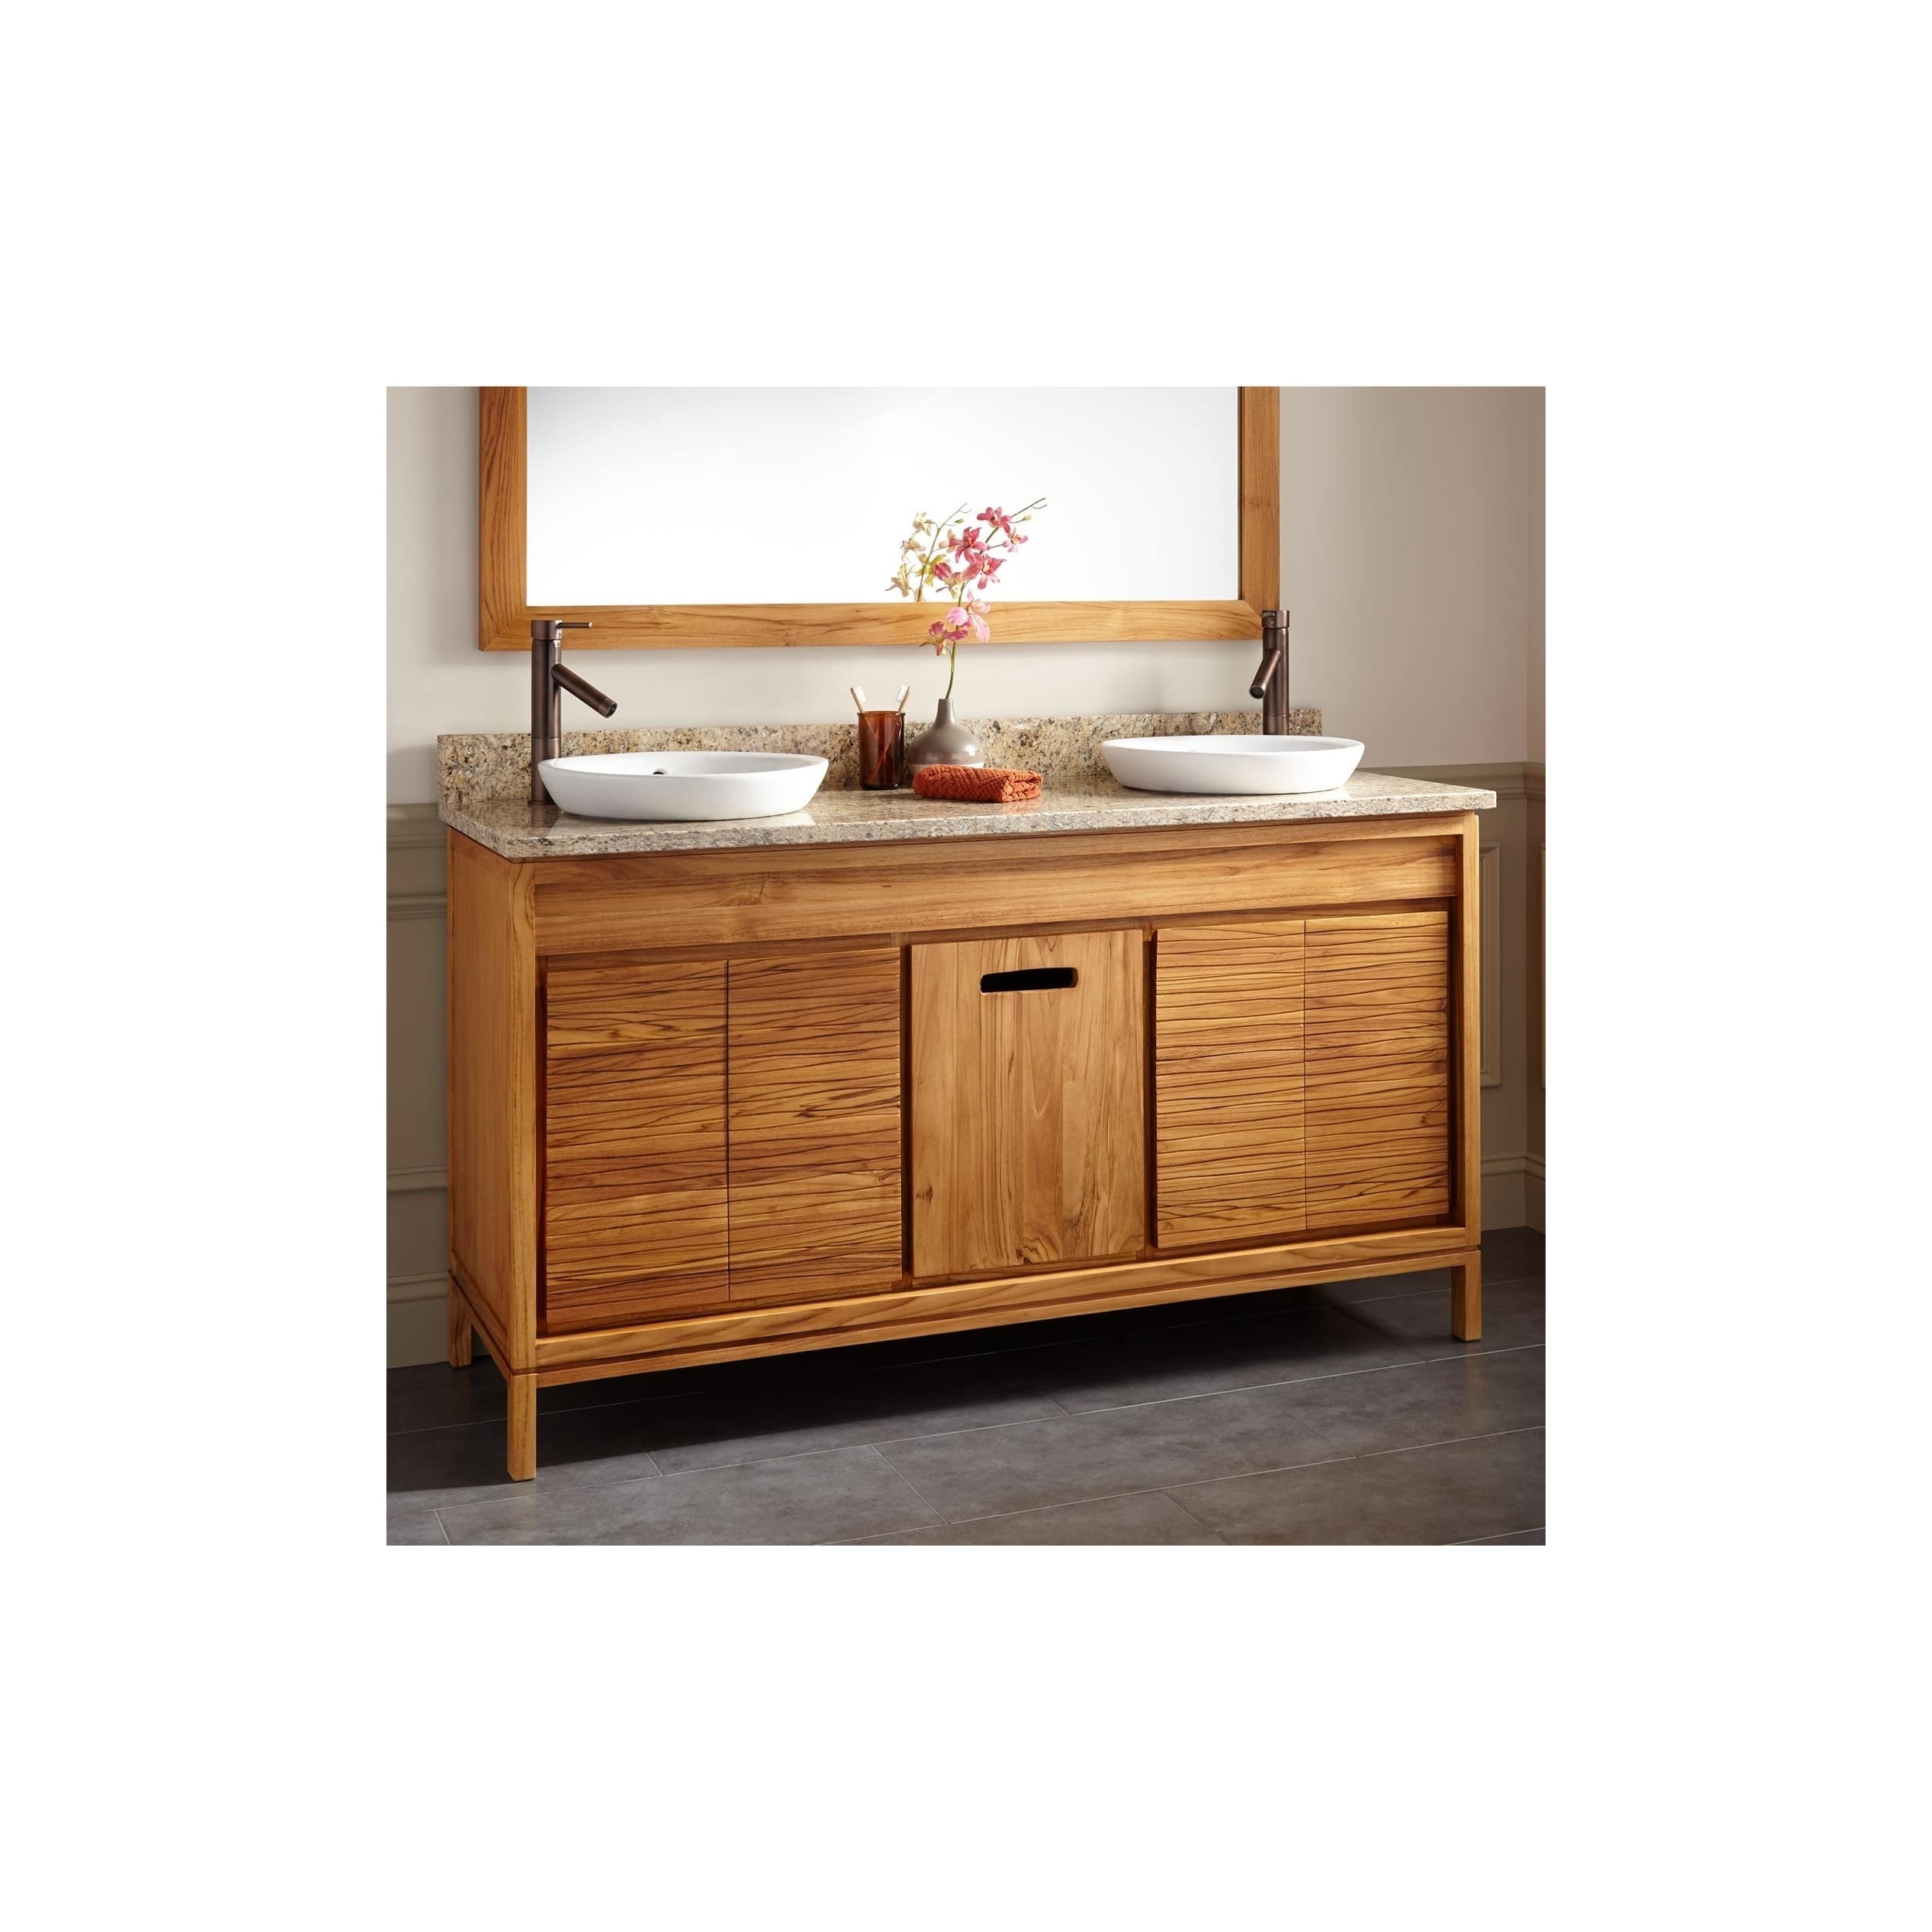 Signature Hardware 942057 Becker 60 Double Vanity Set With Teak Cabinet Granite Vanity Top And Semi Recessed Sinks Overstock 25735542